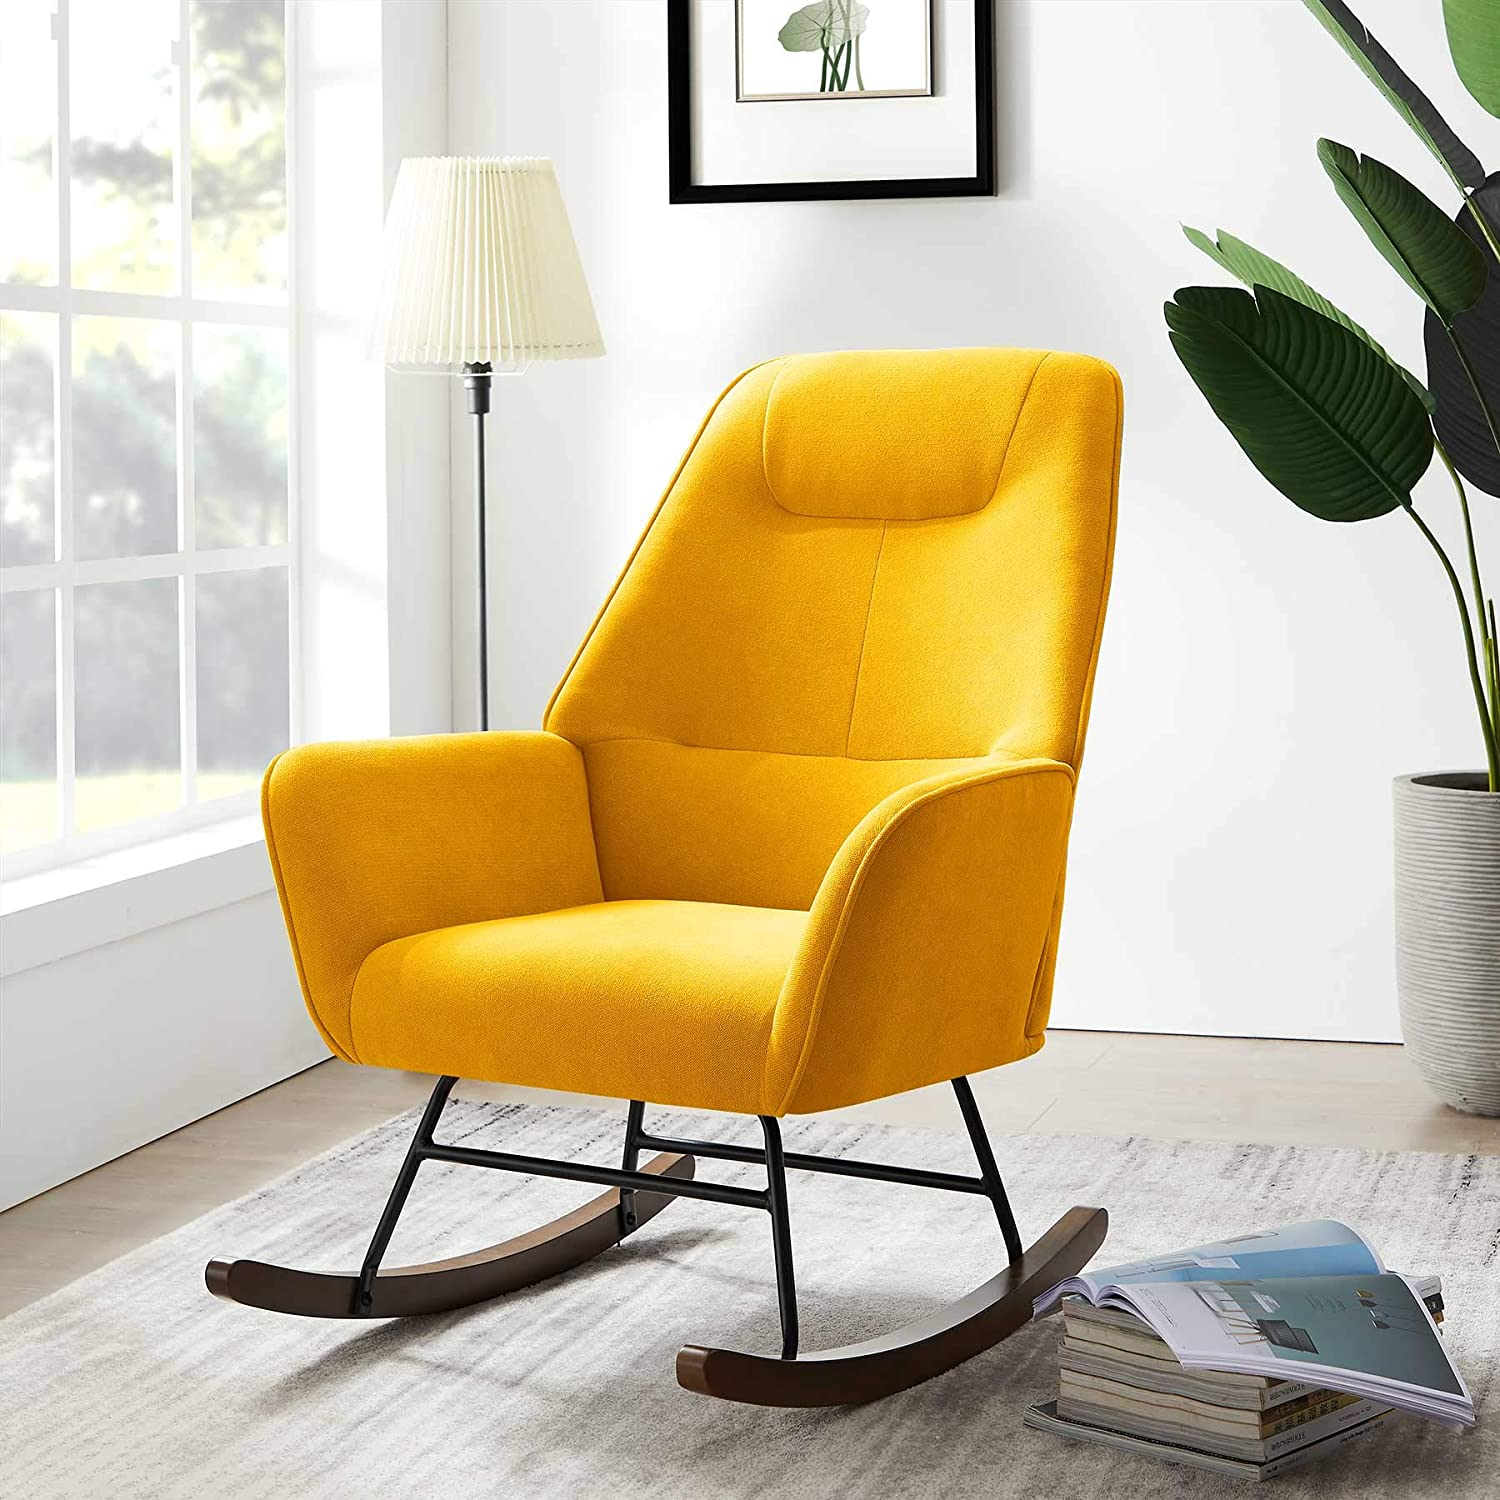 Tribesigns Rocking Chair, Modern Accent Chair, Fabric Arm Chair for Bedroom Living Room (Yellow)